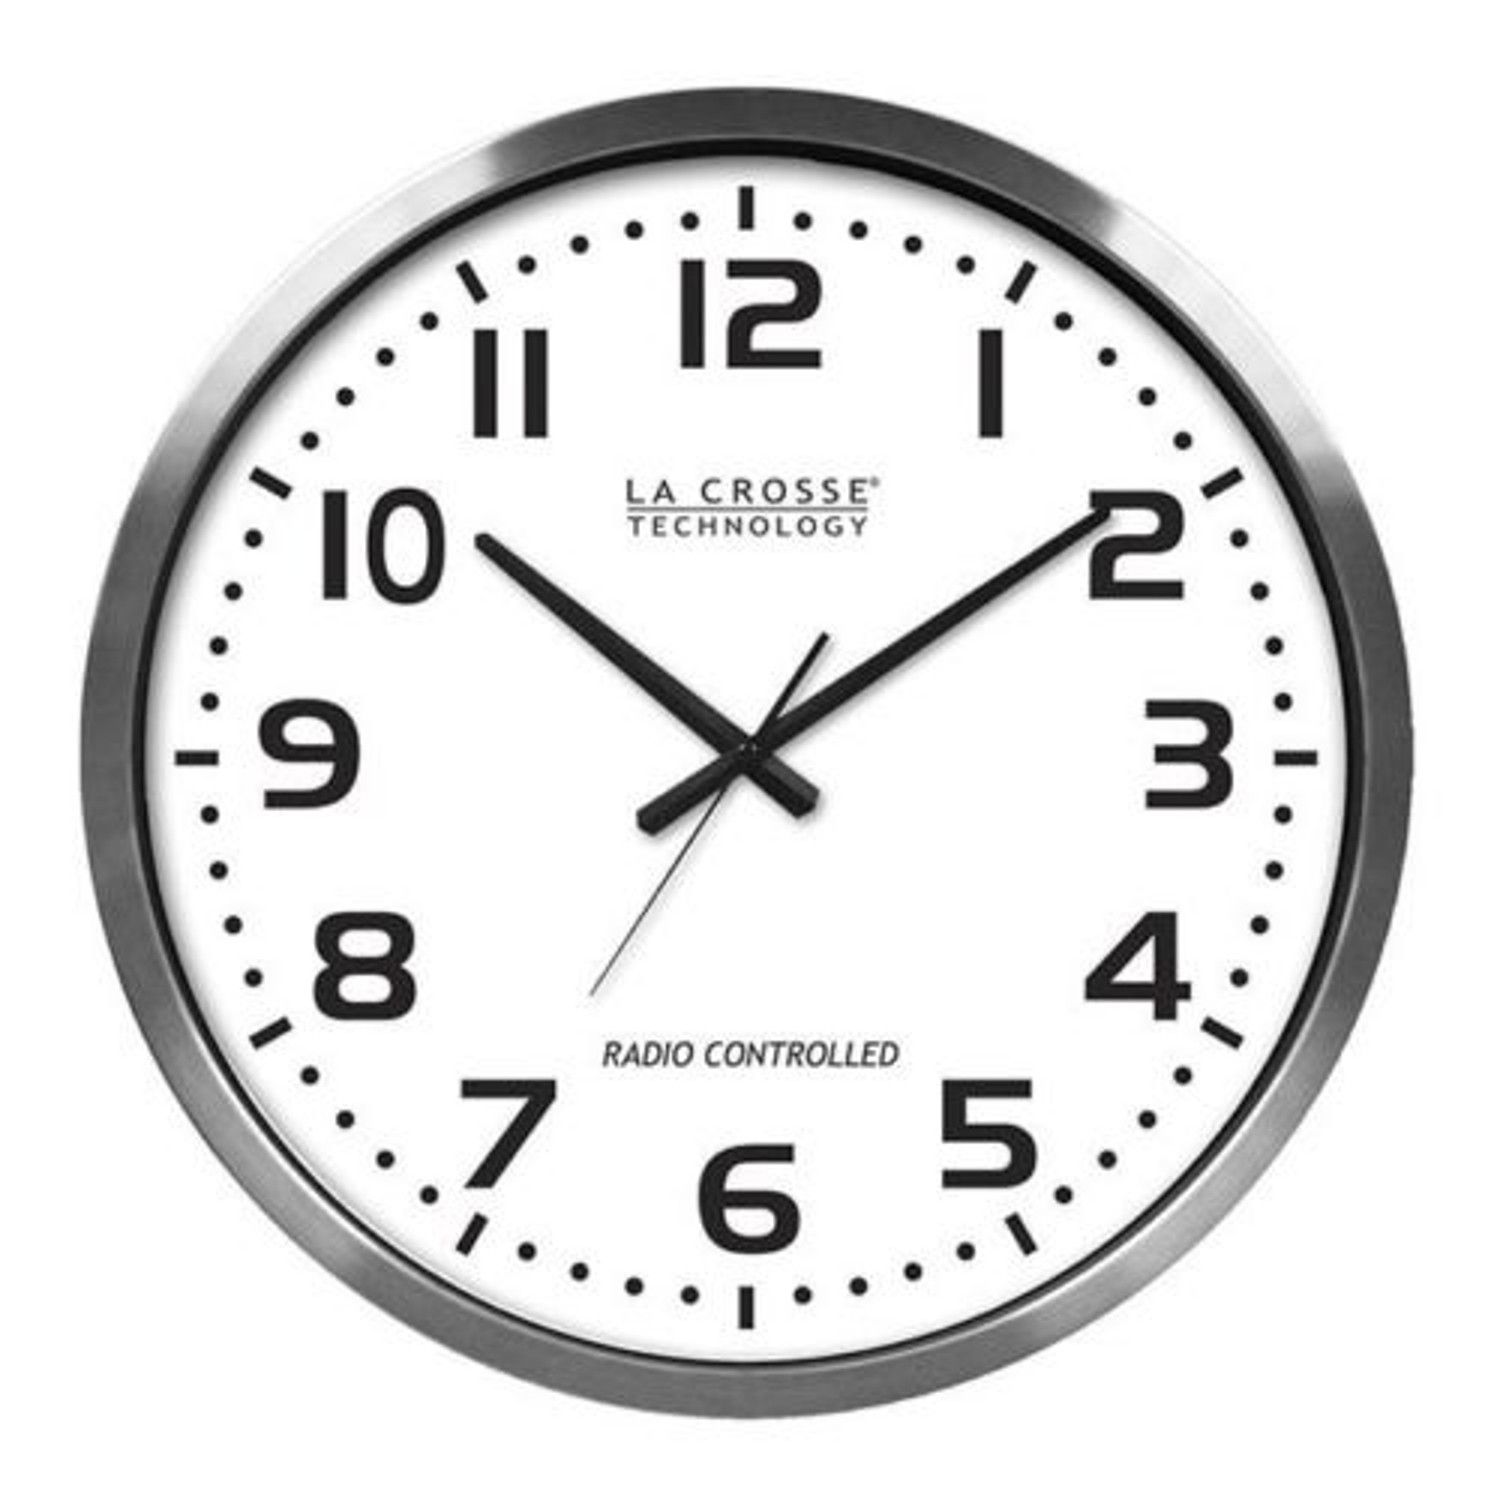 Large atomic wall clock analog 12 hour minute second hands 20 inch large atomic wall clock analog 12 hour minute second hands 20 inch easy read new amipublicfo Image collections